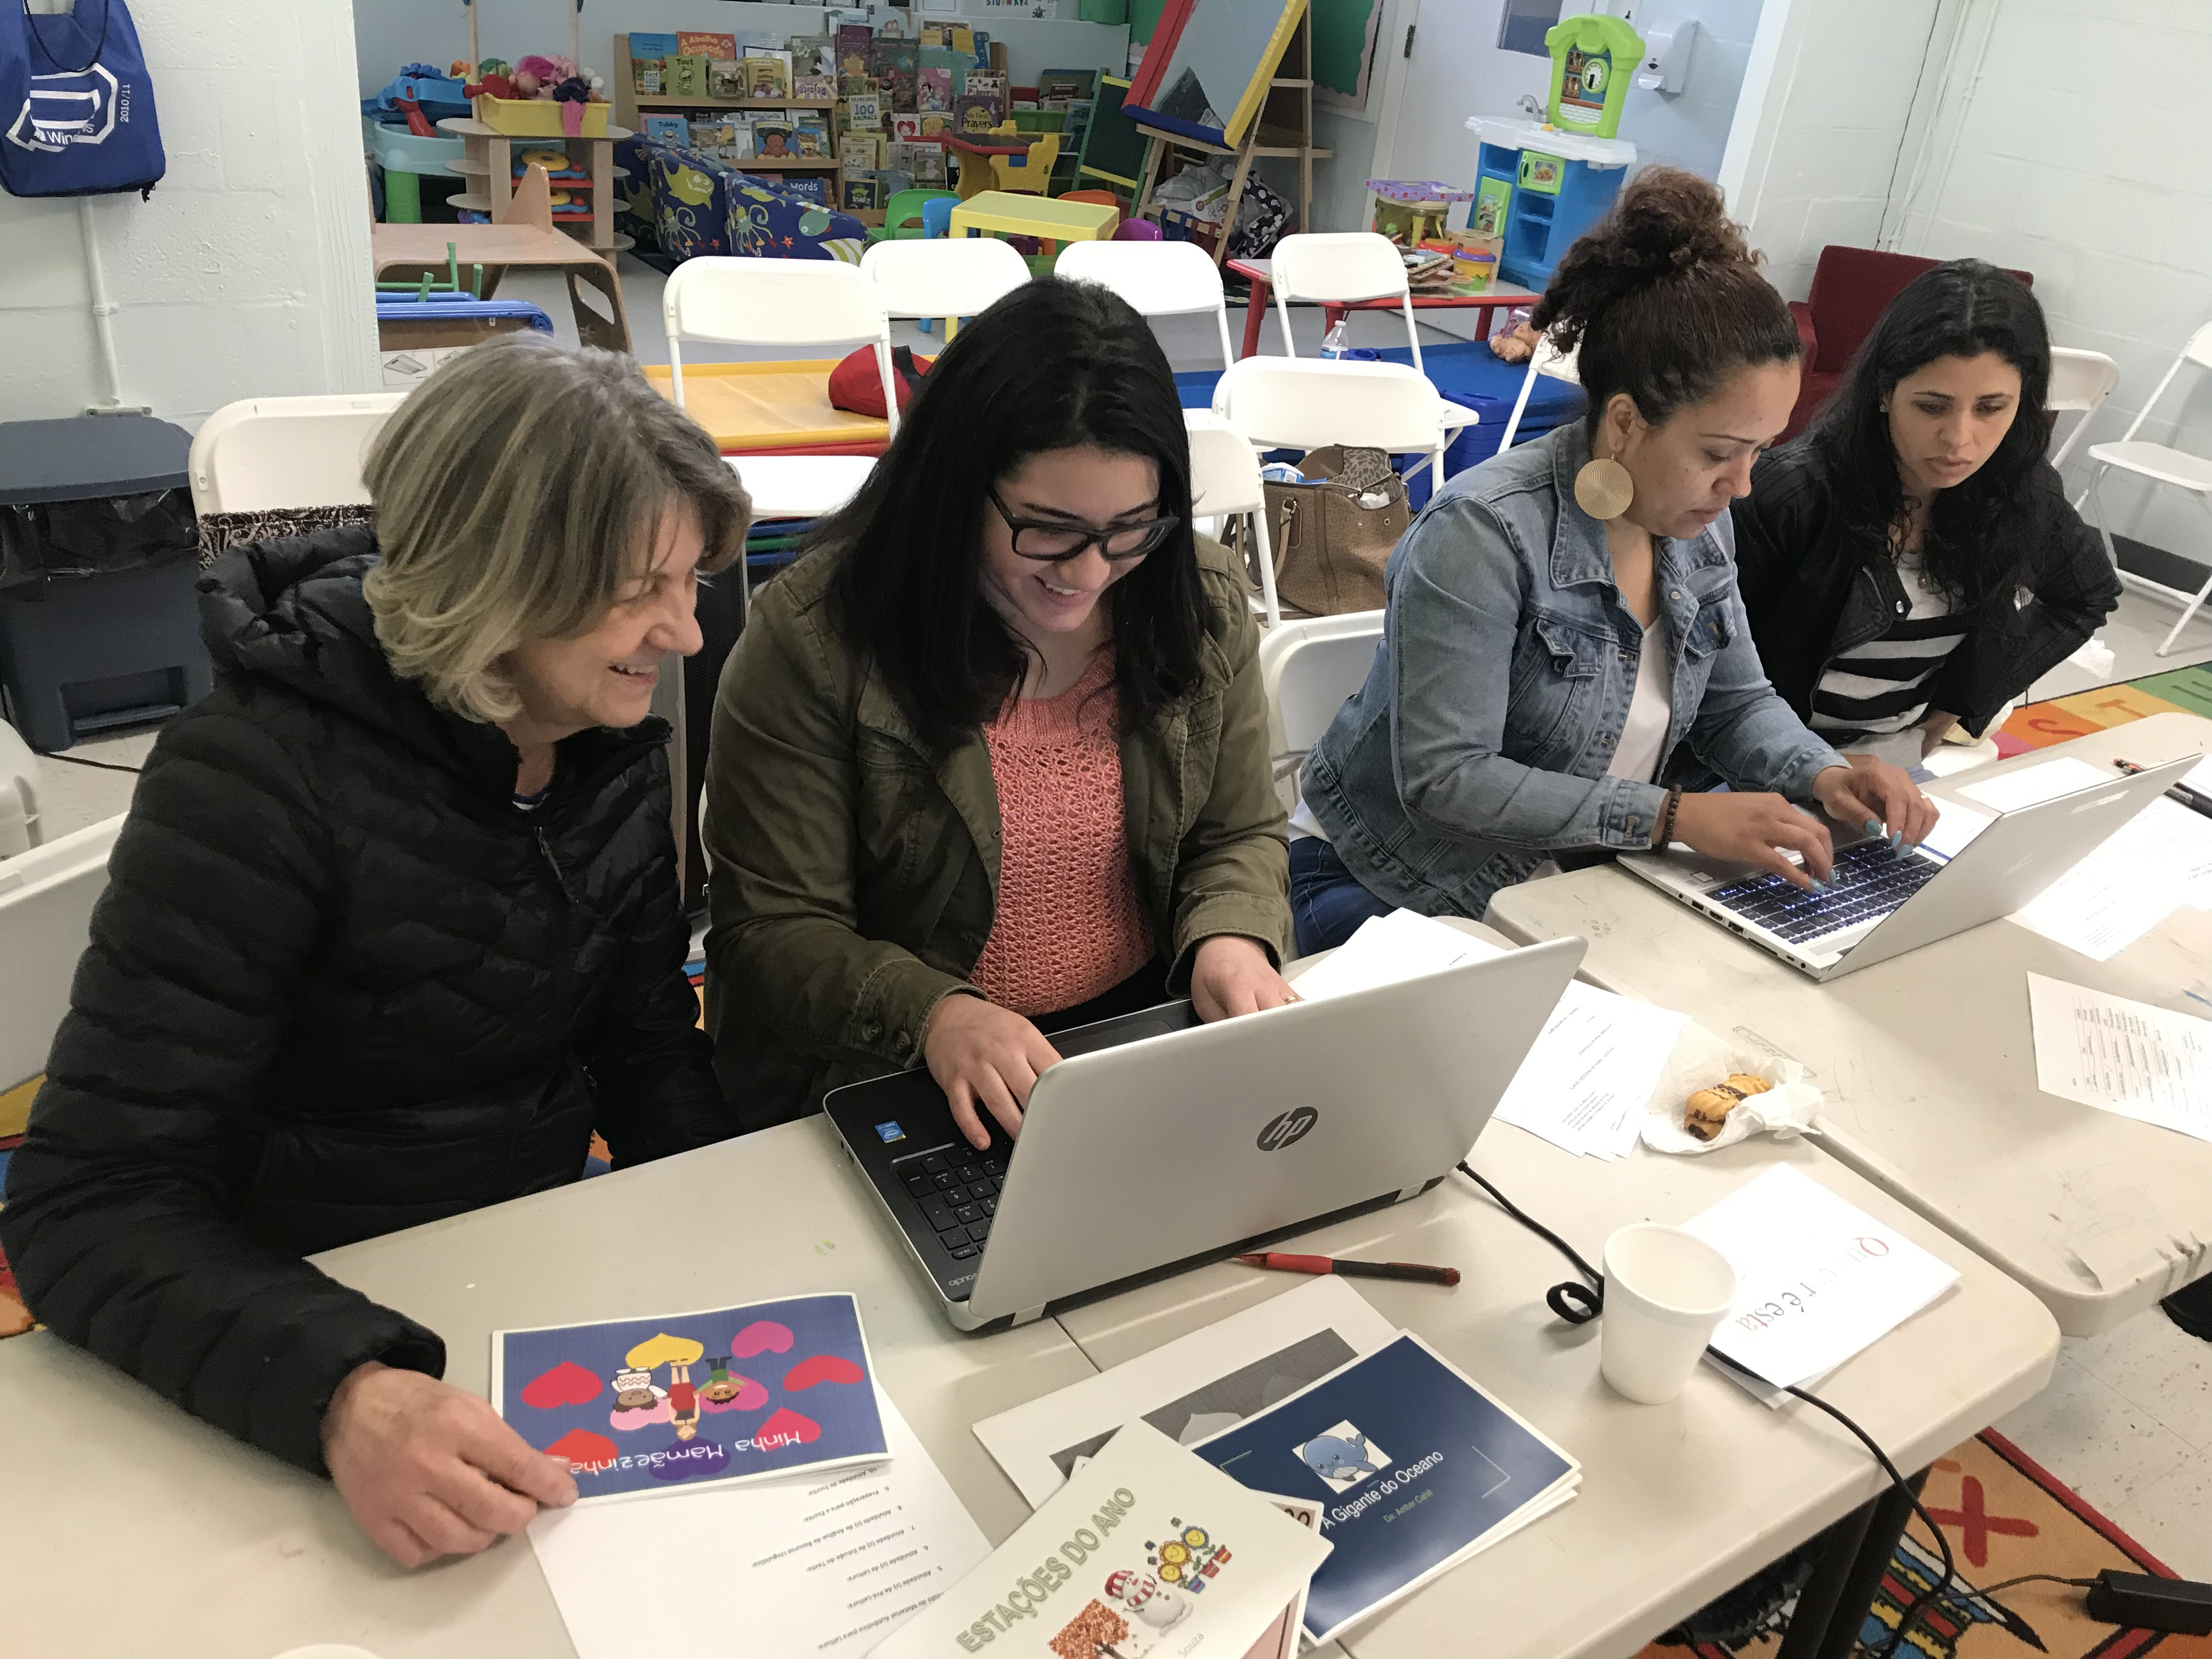 Students and teachers working on children's book